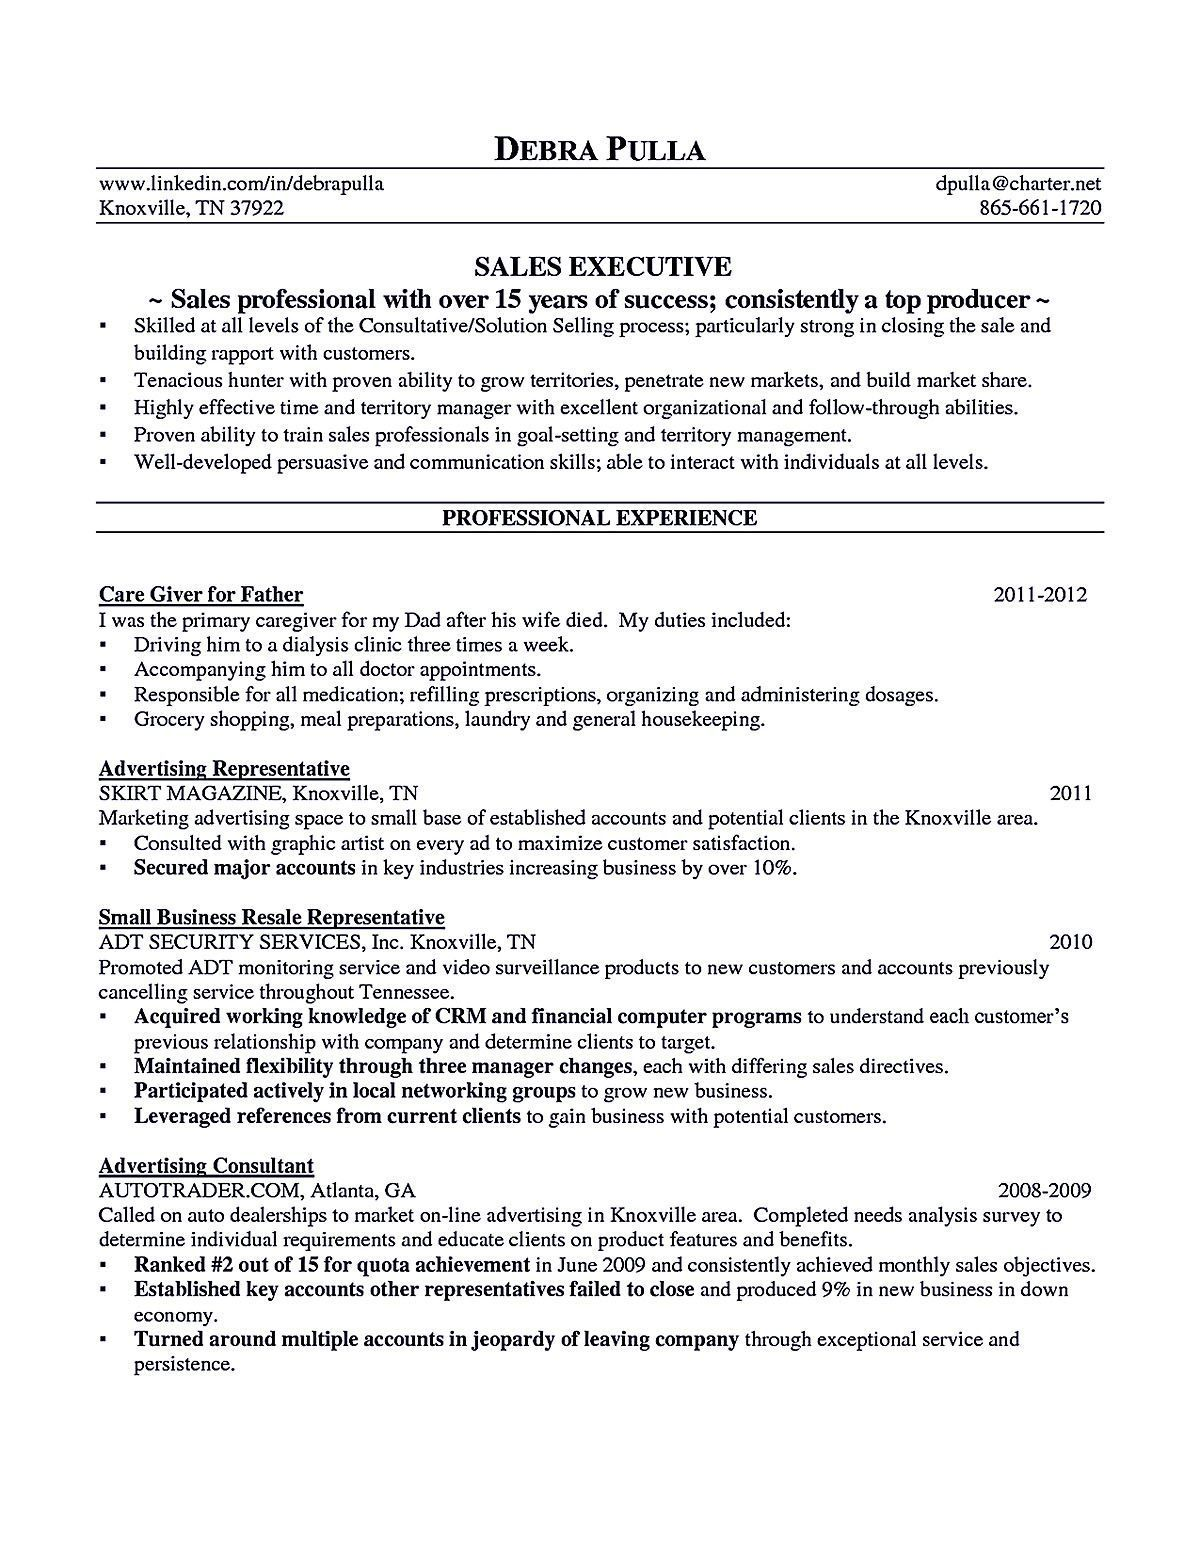 Advertising Account Executive Resume Captivating Account Executive Resume Is Like Your Weapon To Get The Job You Want .